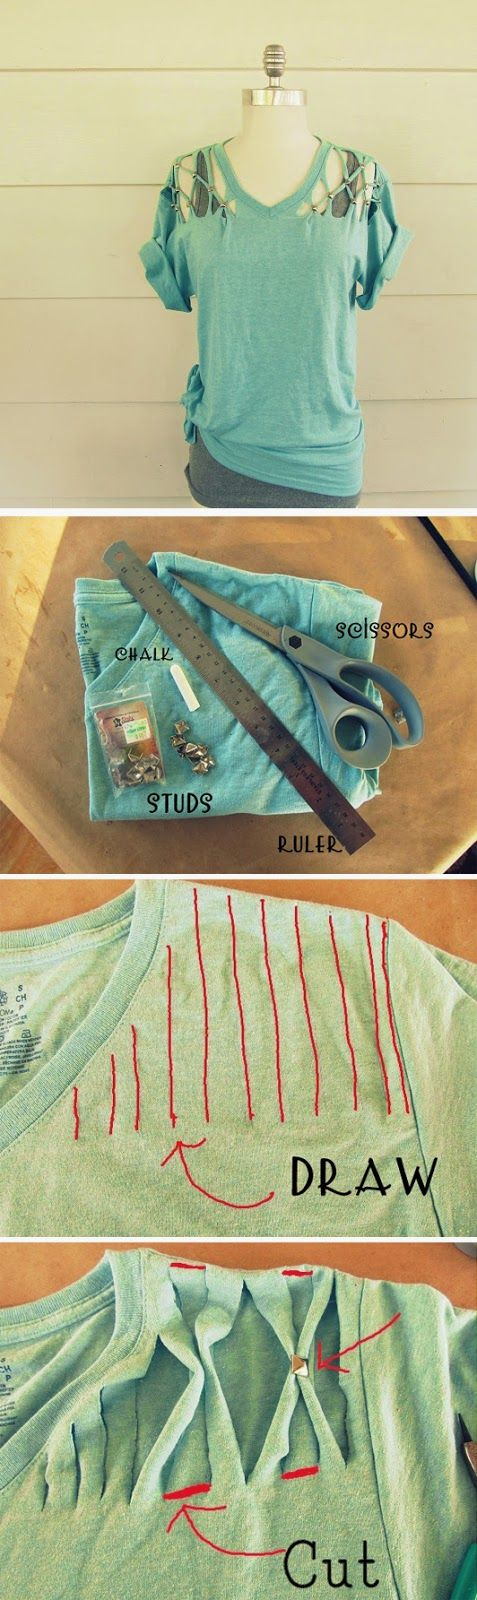 Zoom DIY: 16 Upcycled and Refashioned TShirt DIY